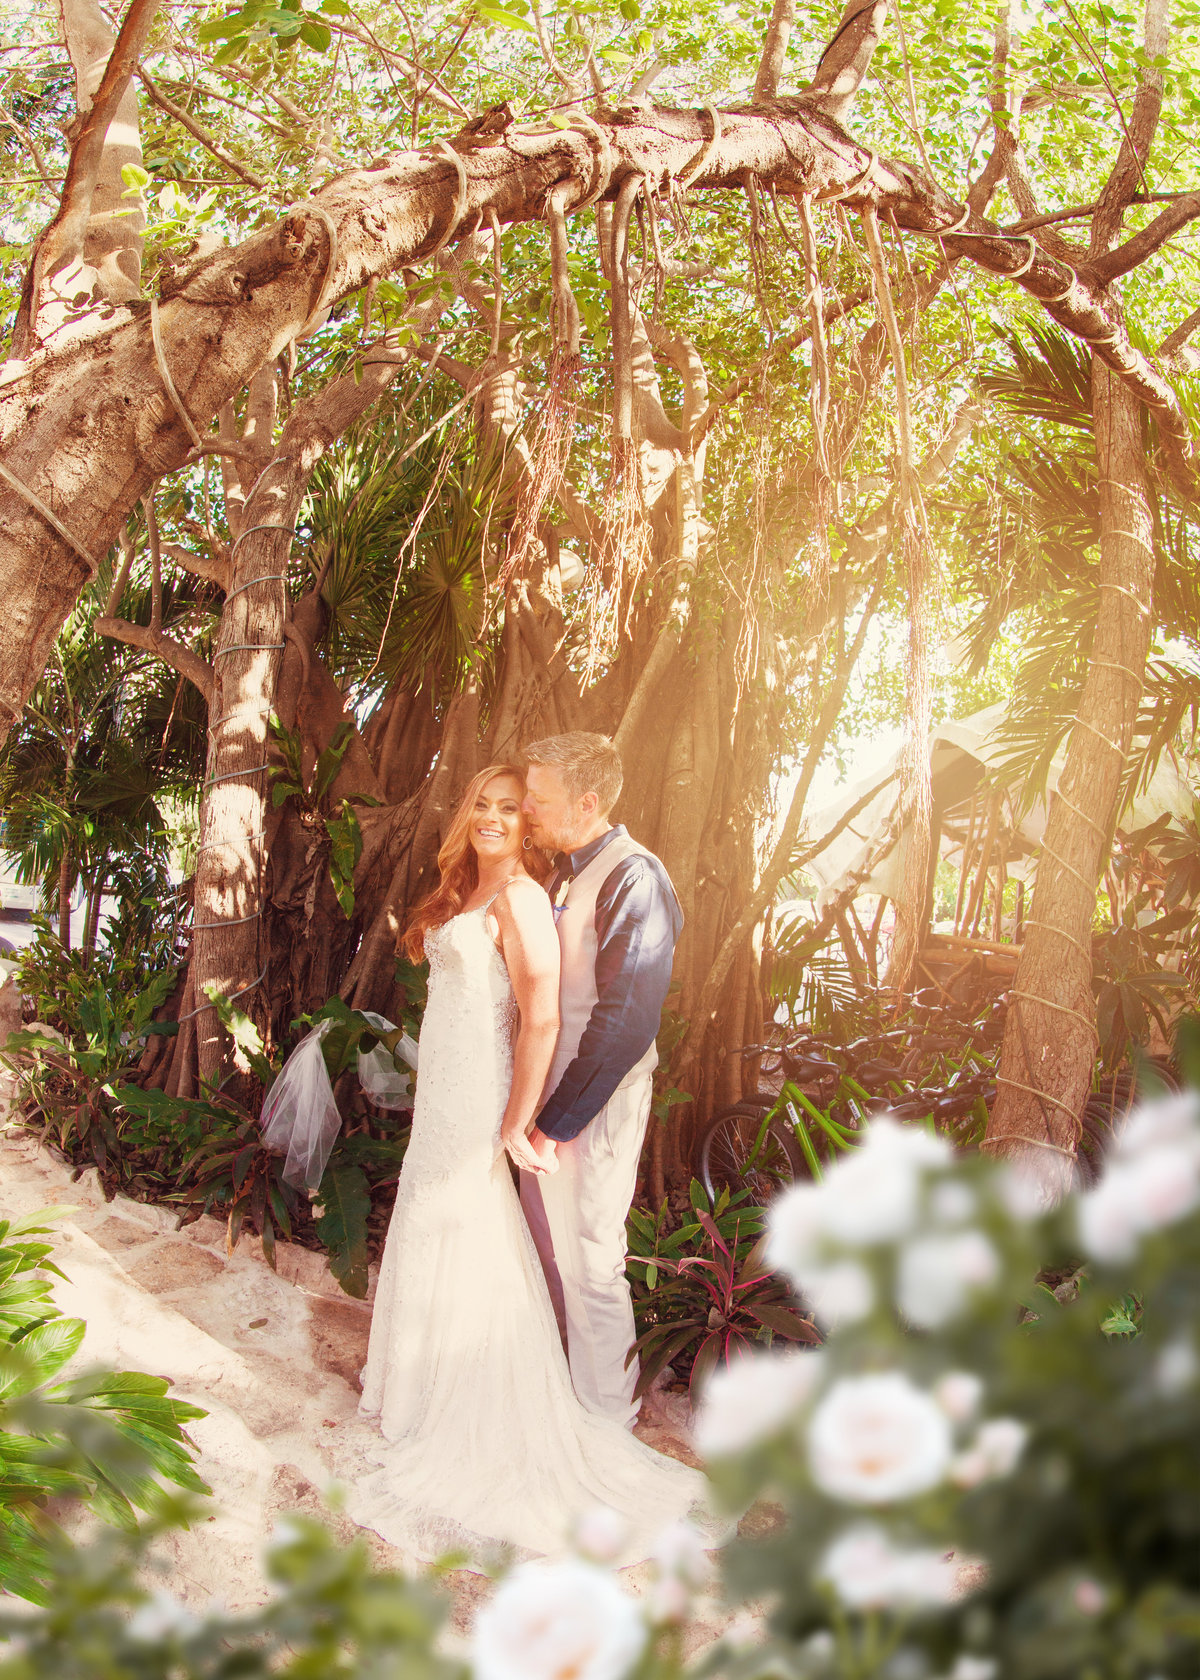 riviera maya wedding, cancon photographer, 405 brides